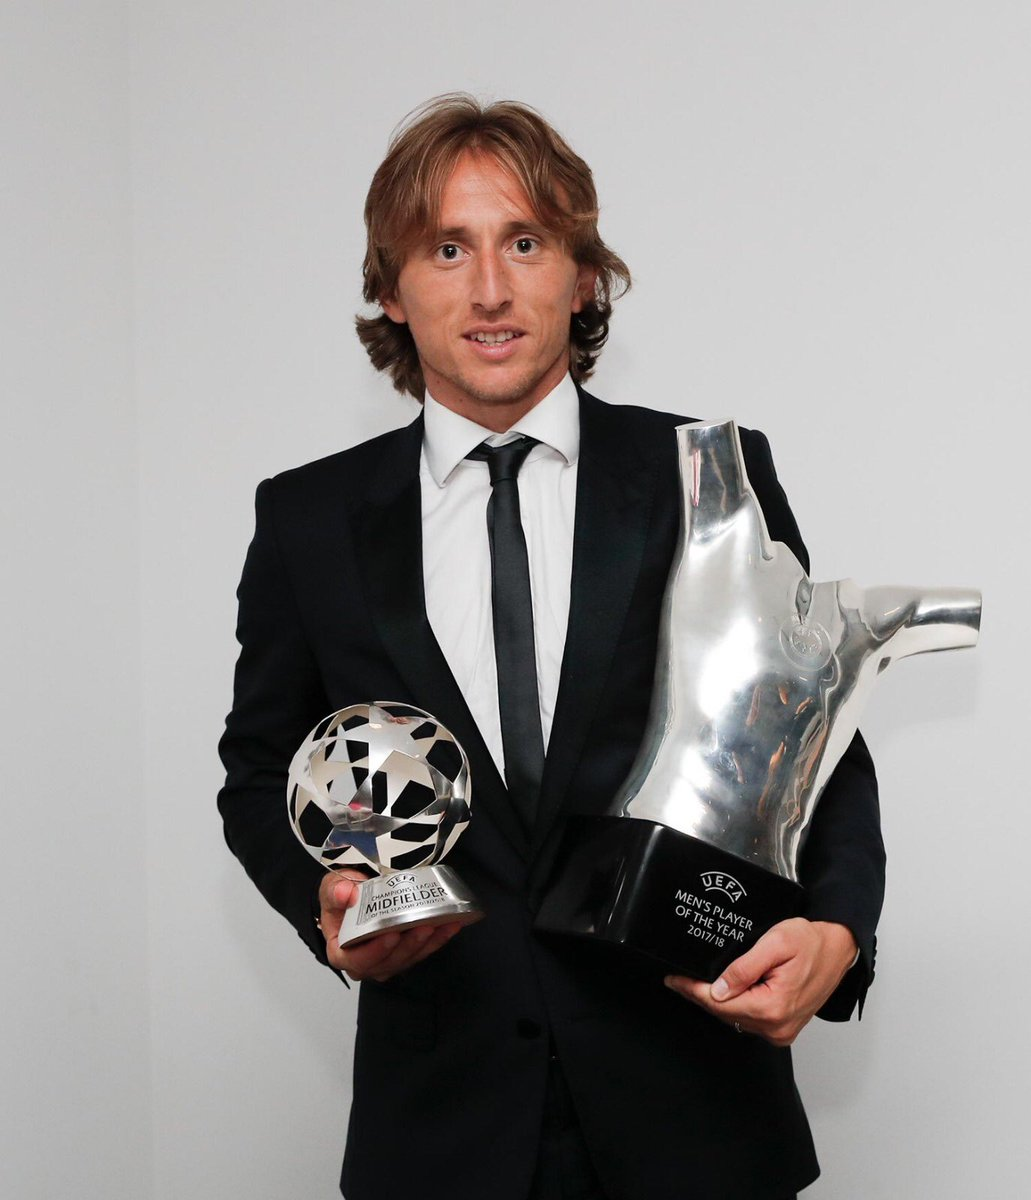 What a year! Thanks Real Madrid, Croatia National team and everybody who helped me to achieve this amazing award 🙏❤️ #UEFAawards